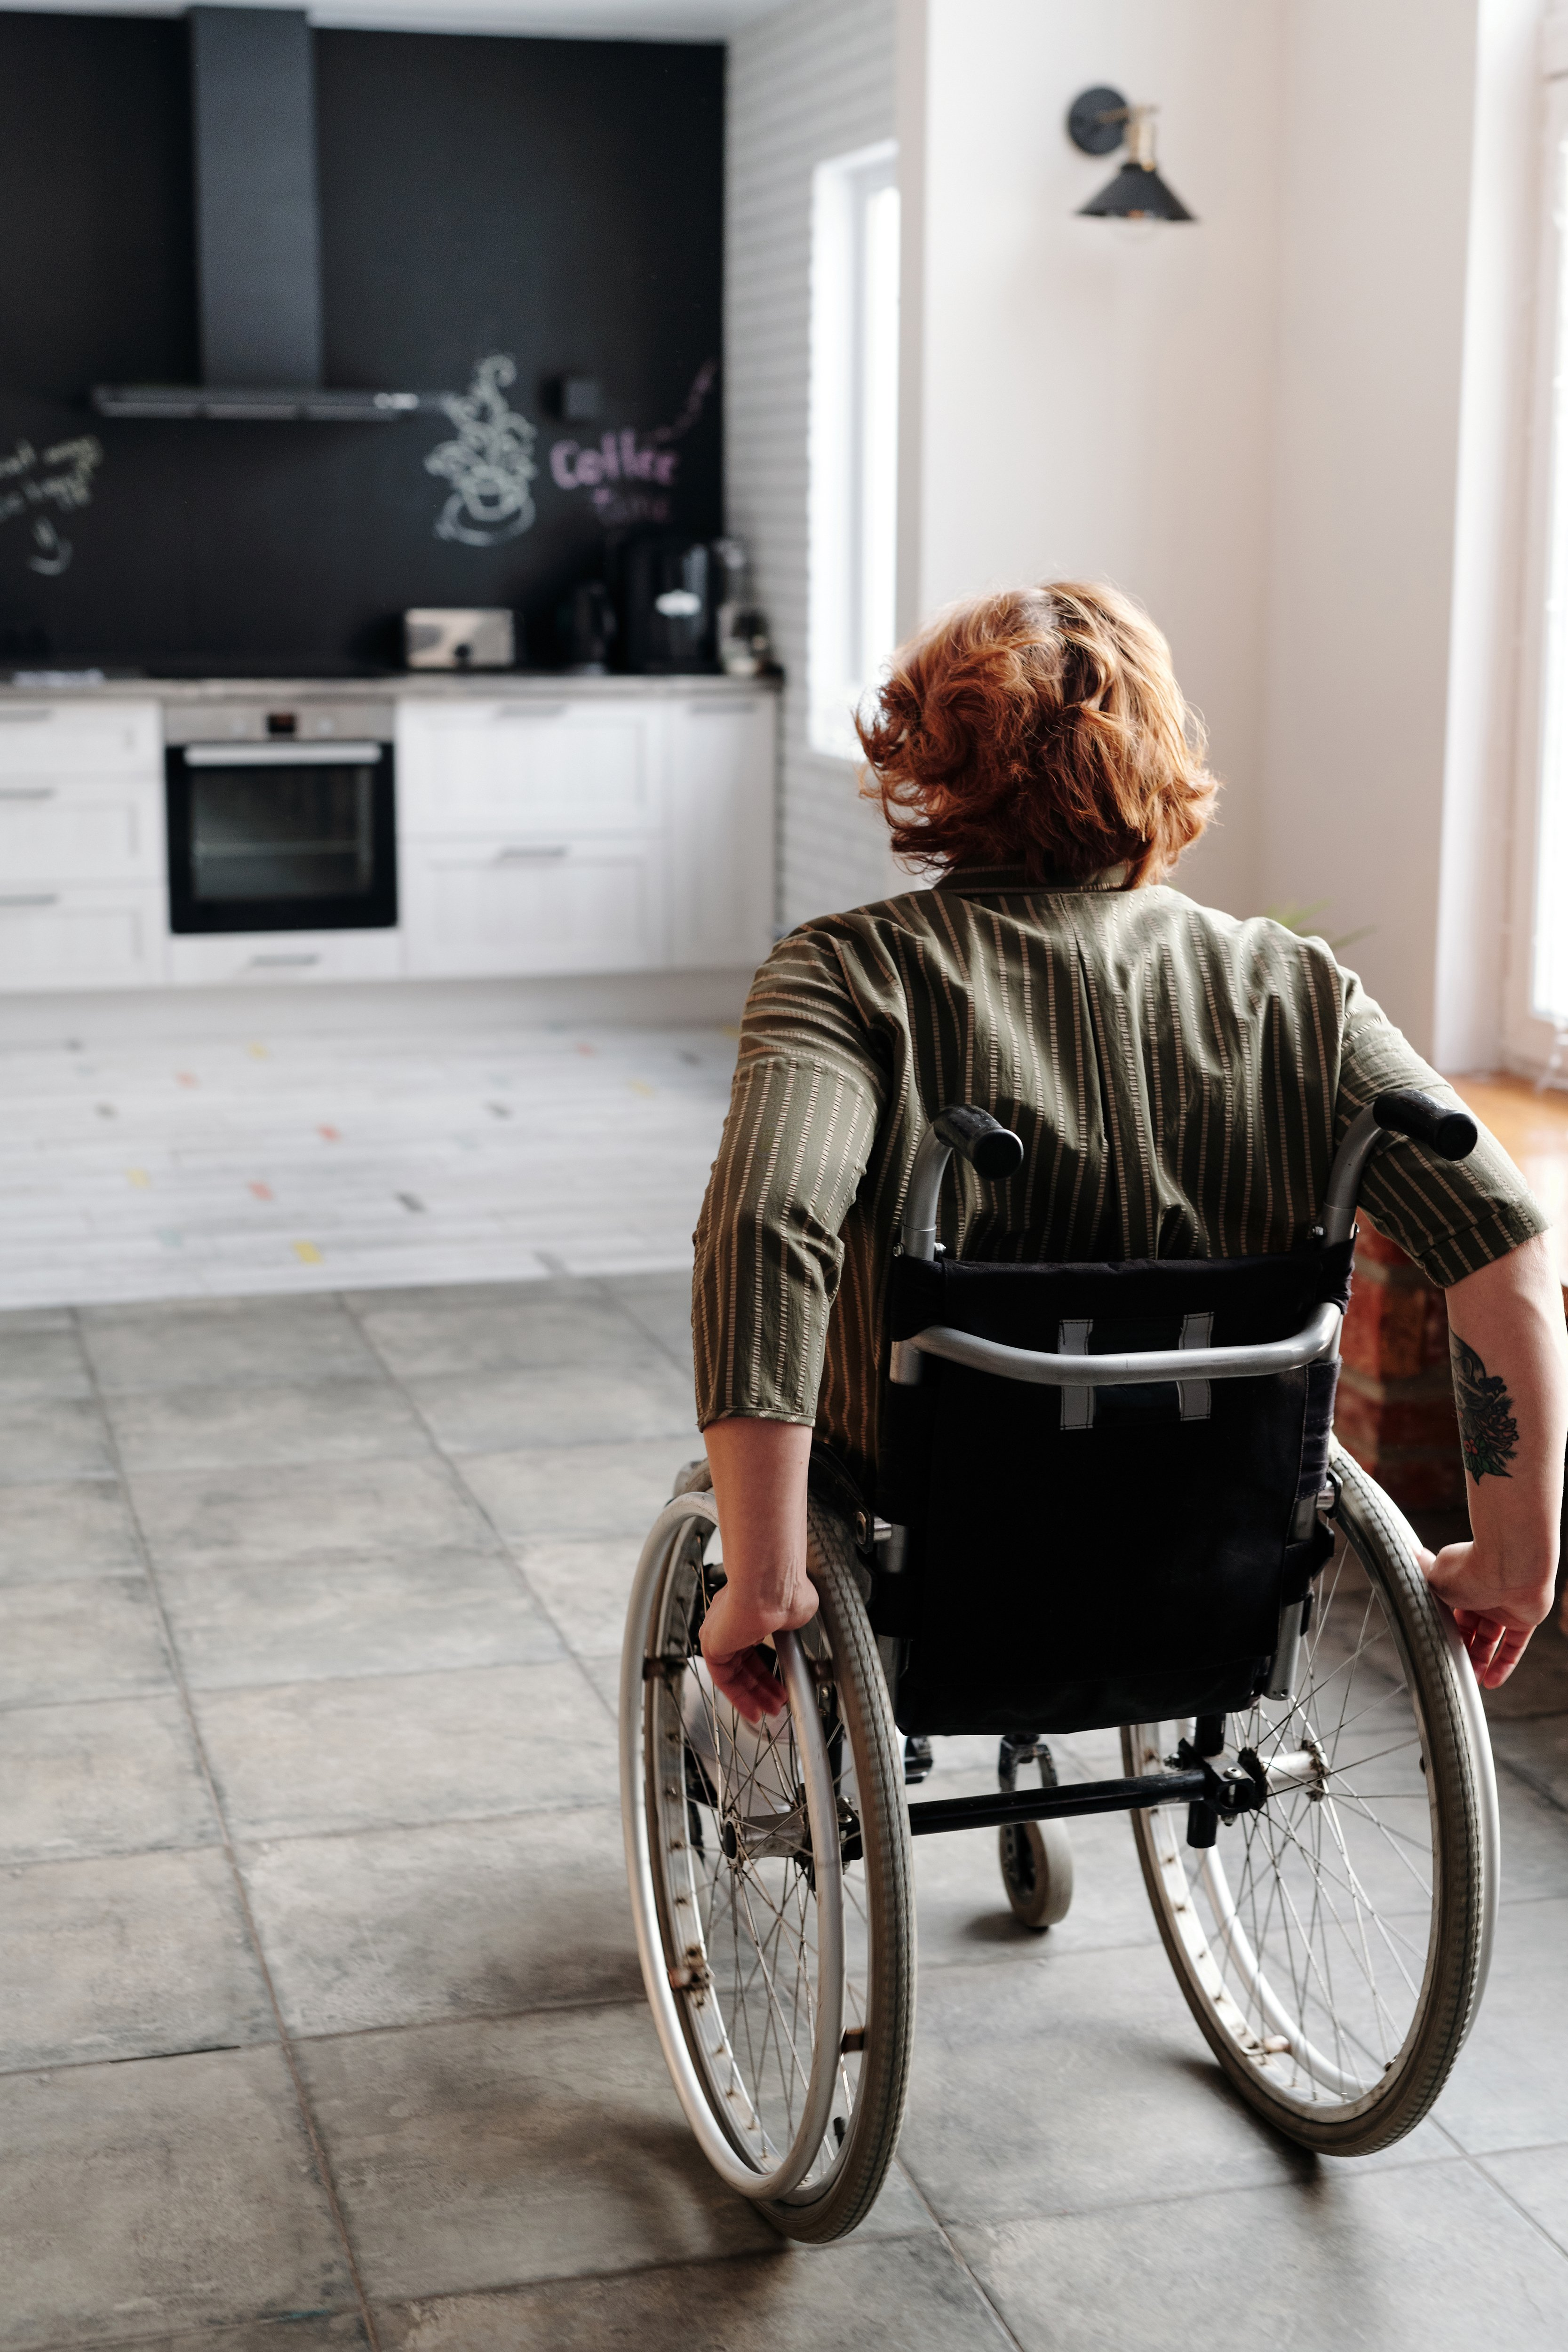 Universal Design - Creating a Home for a Lifetime